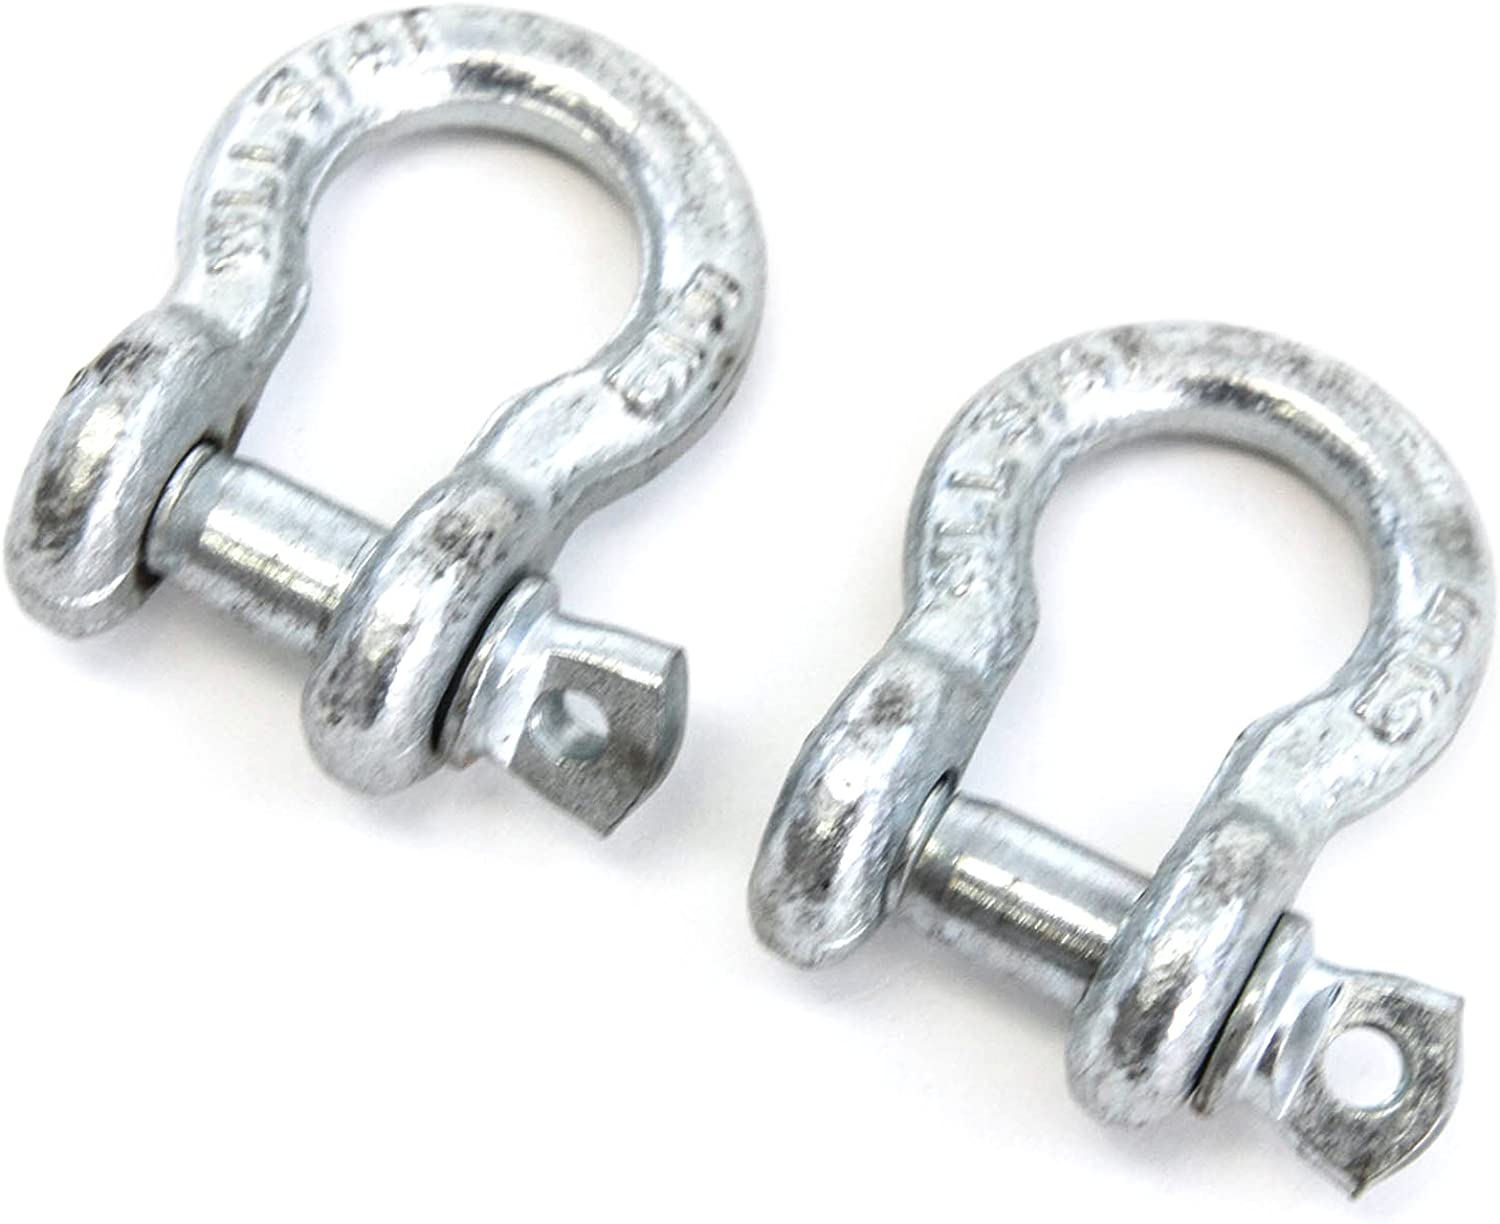 Red Hound Auto 20 Galvanized 5//16 8mm Boat Marine Anchor Bow Shackle Heavy Duty Steel Screw Pin